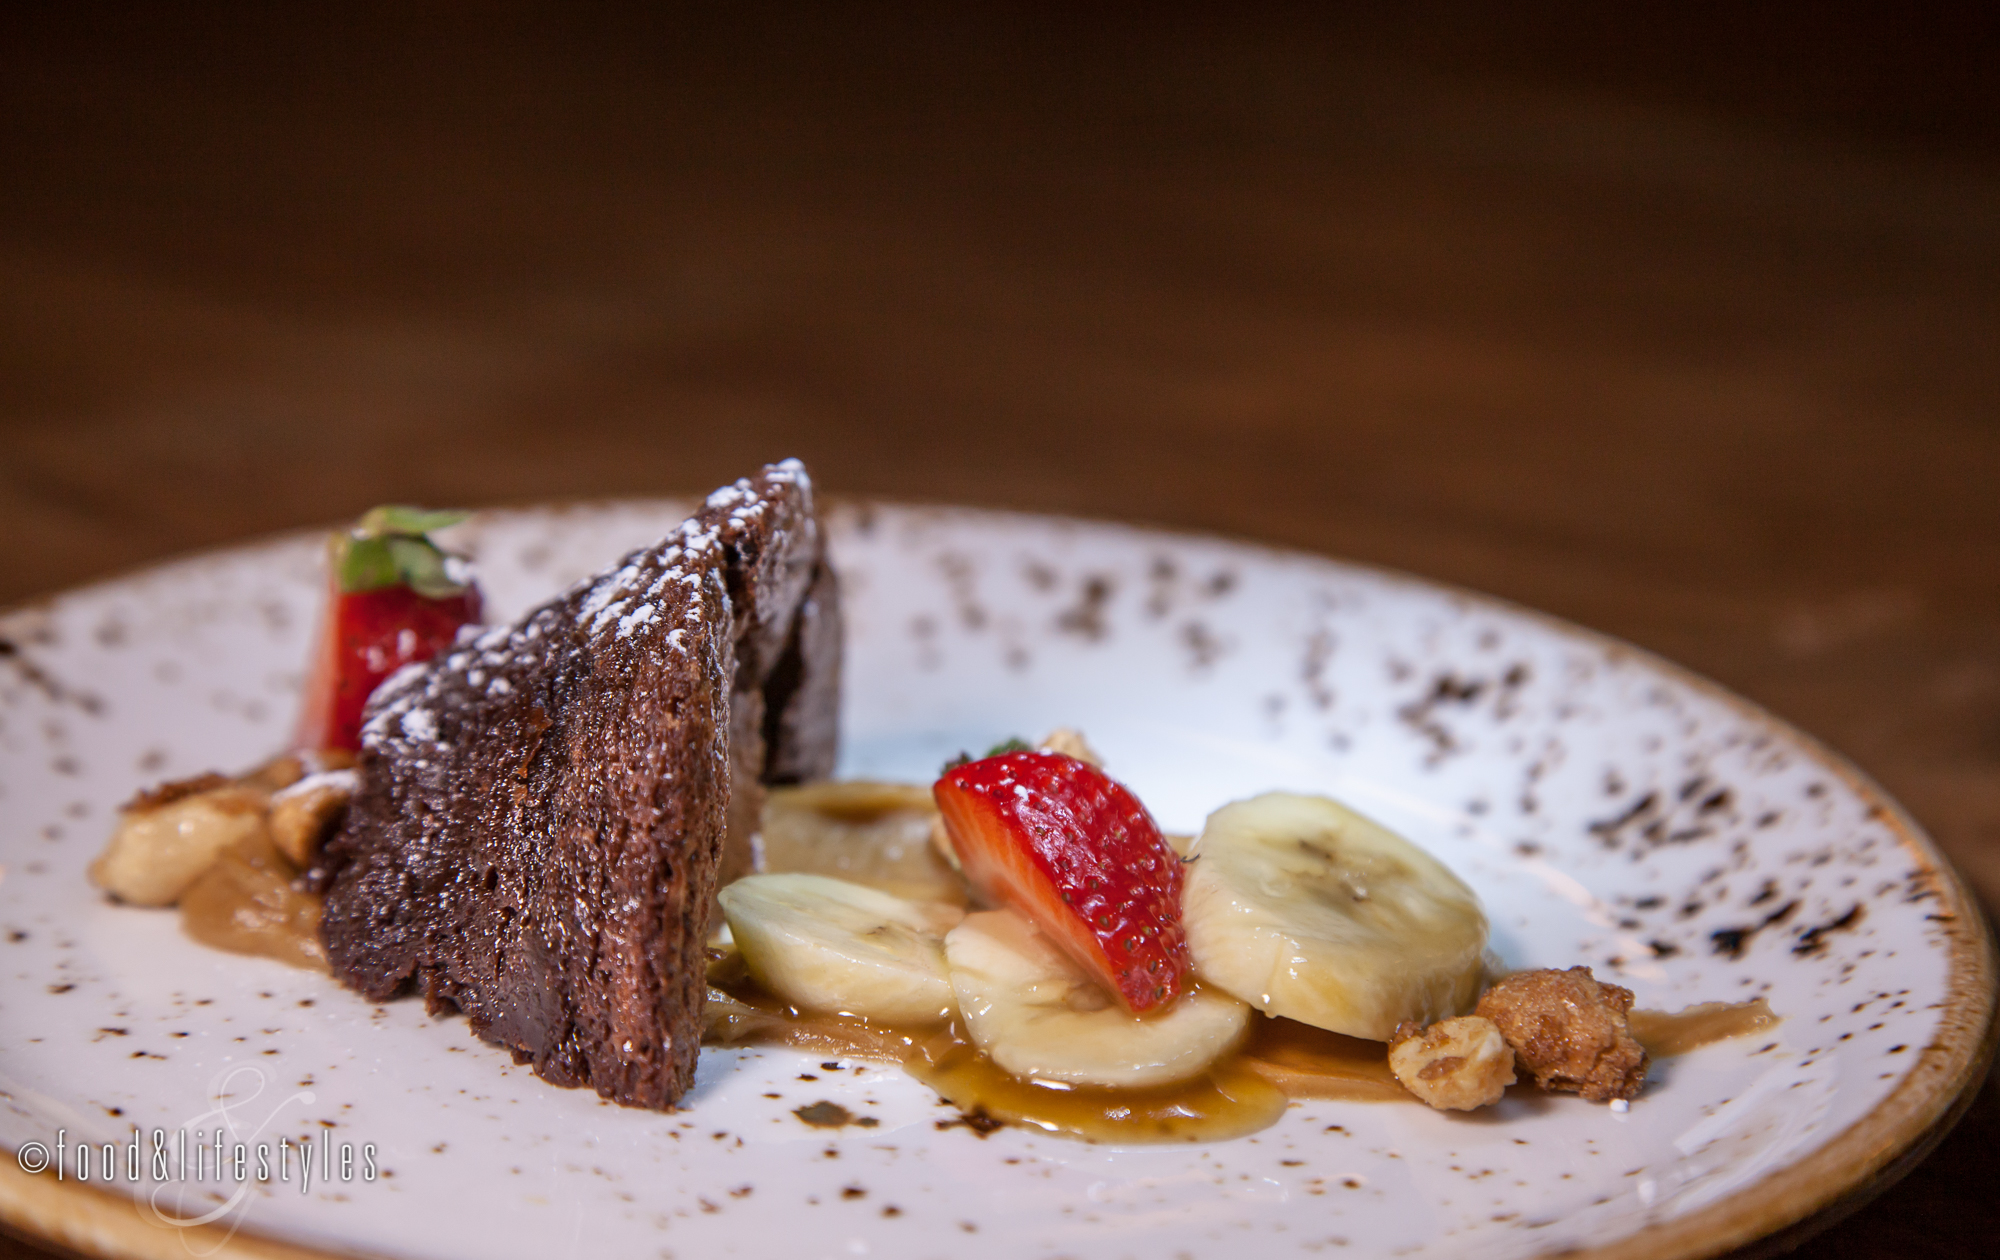 Chile-chocolate torte with peanut butter and bananas